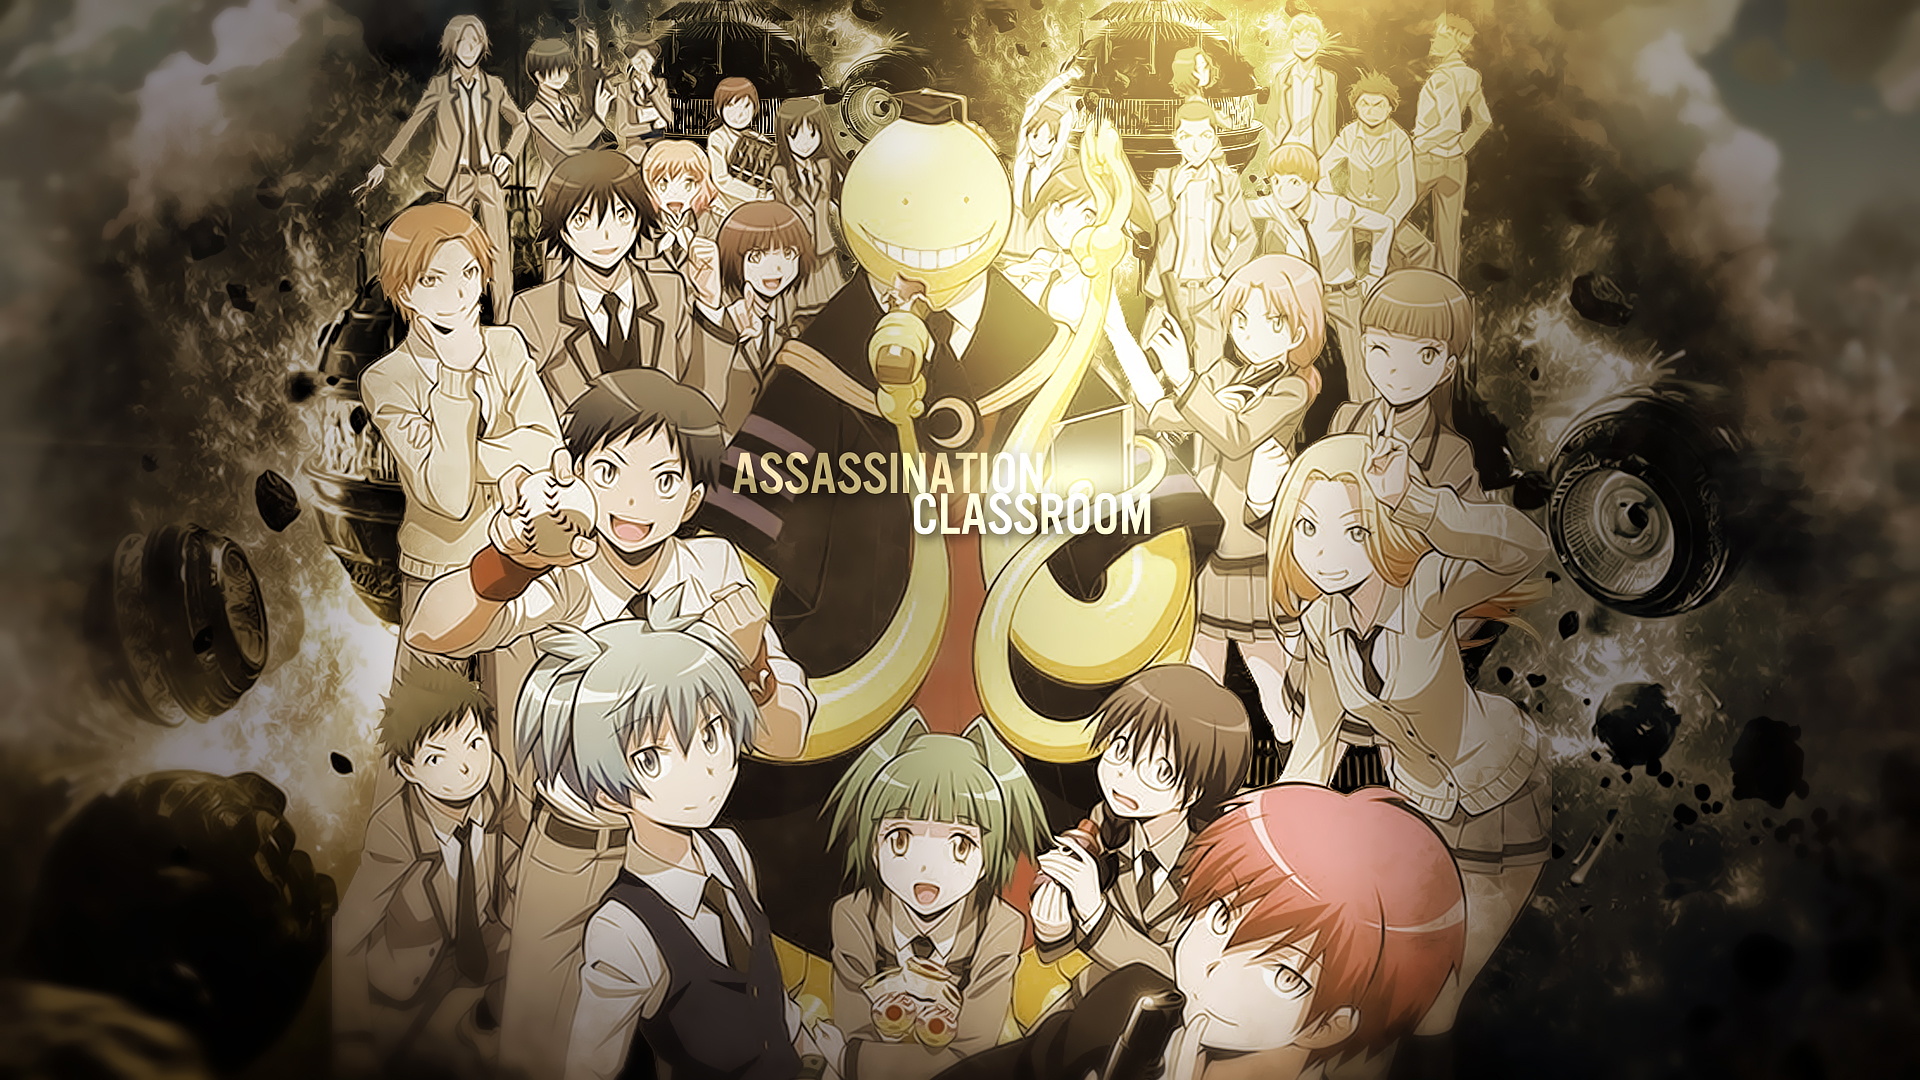 assassination classroom poster full hd wallpaper and